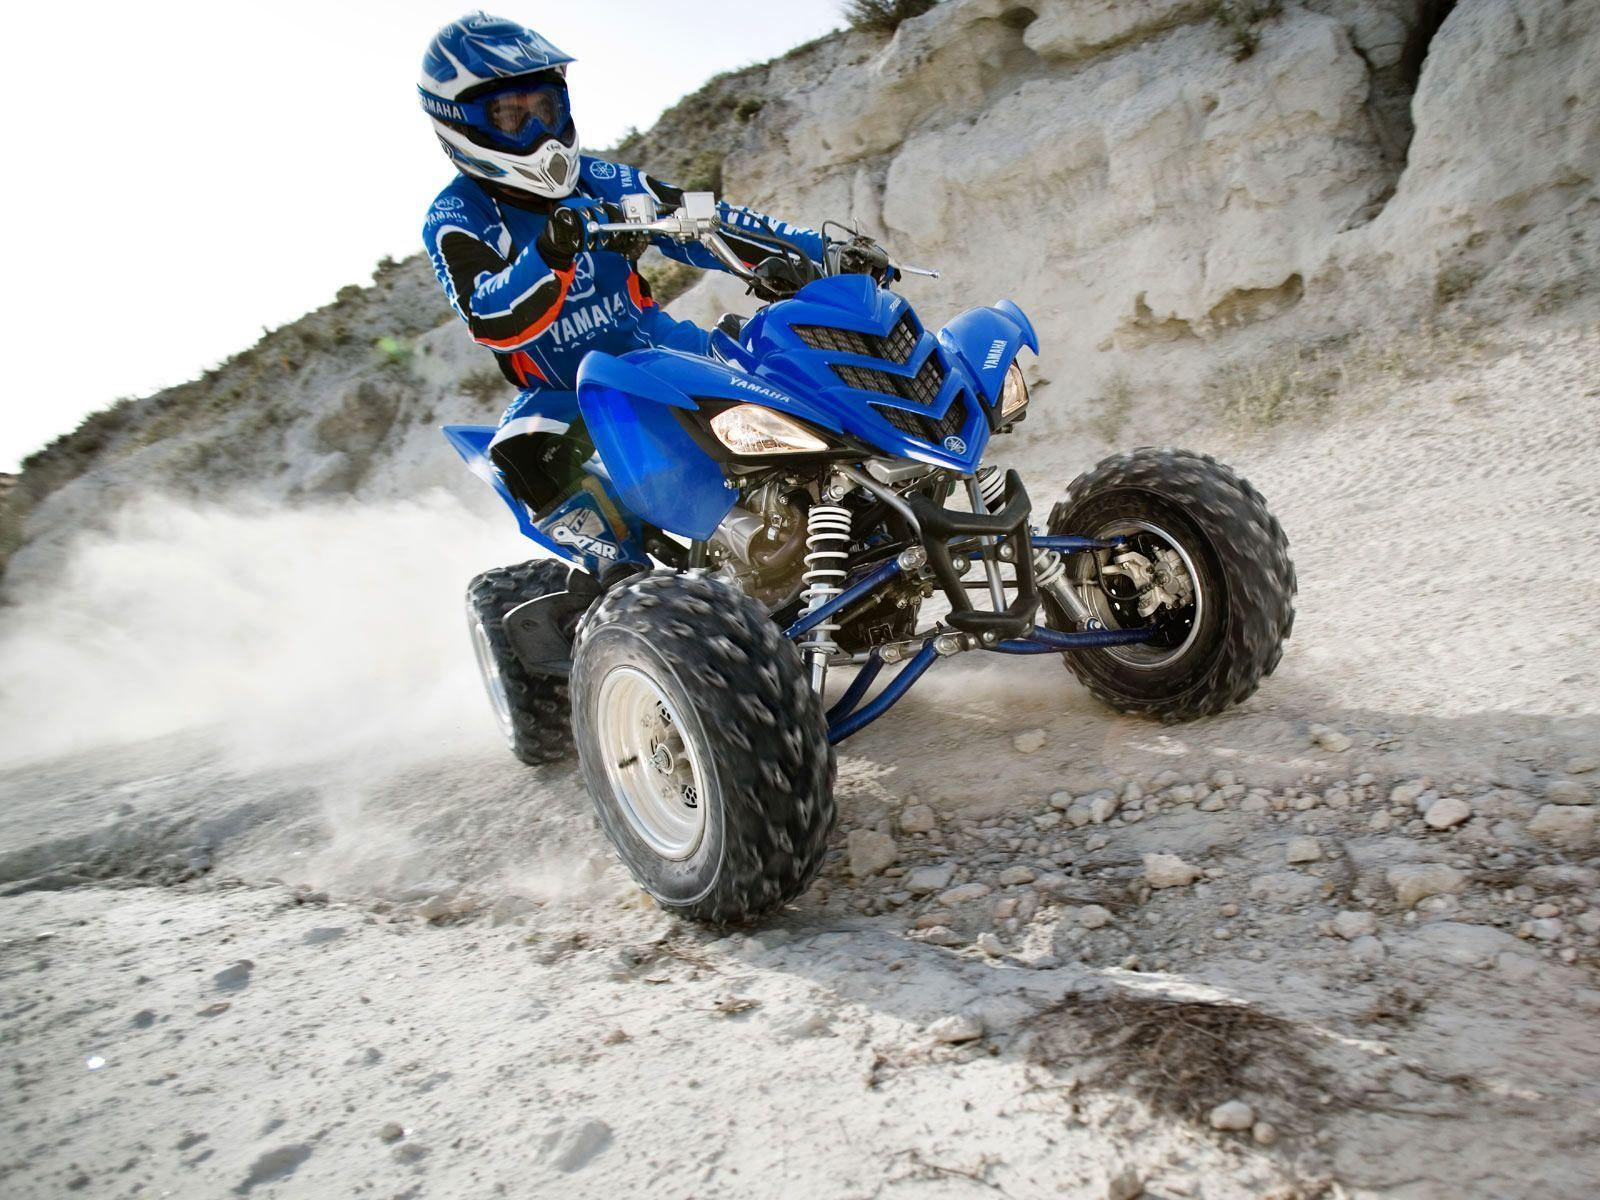 YAMAHA RAPTOR atv quad offroad motorbike bike dirtbike d wallpapers